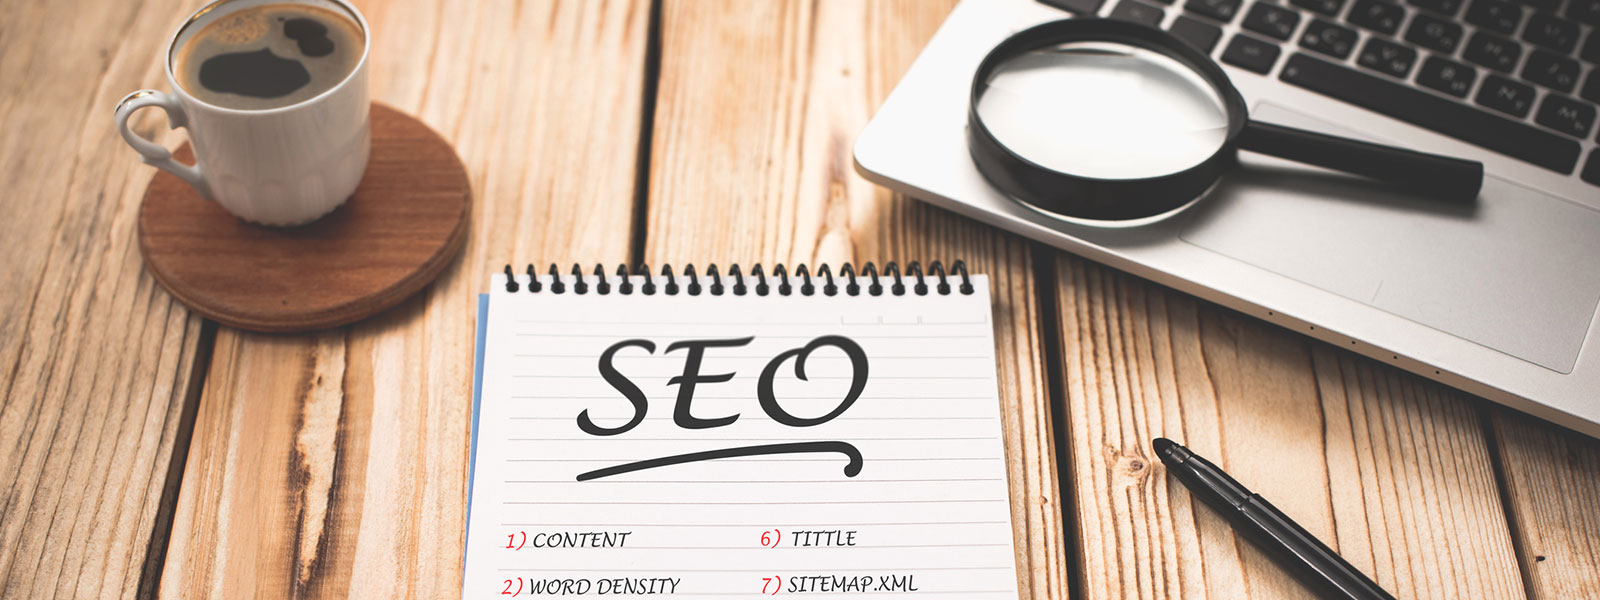 SEO: The Ultimate Guide